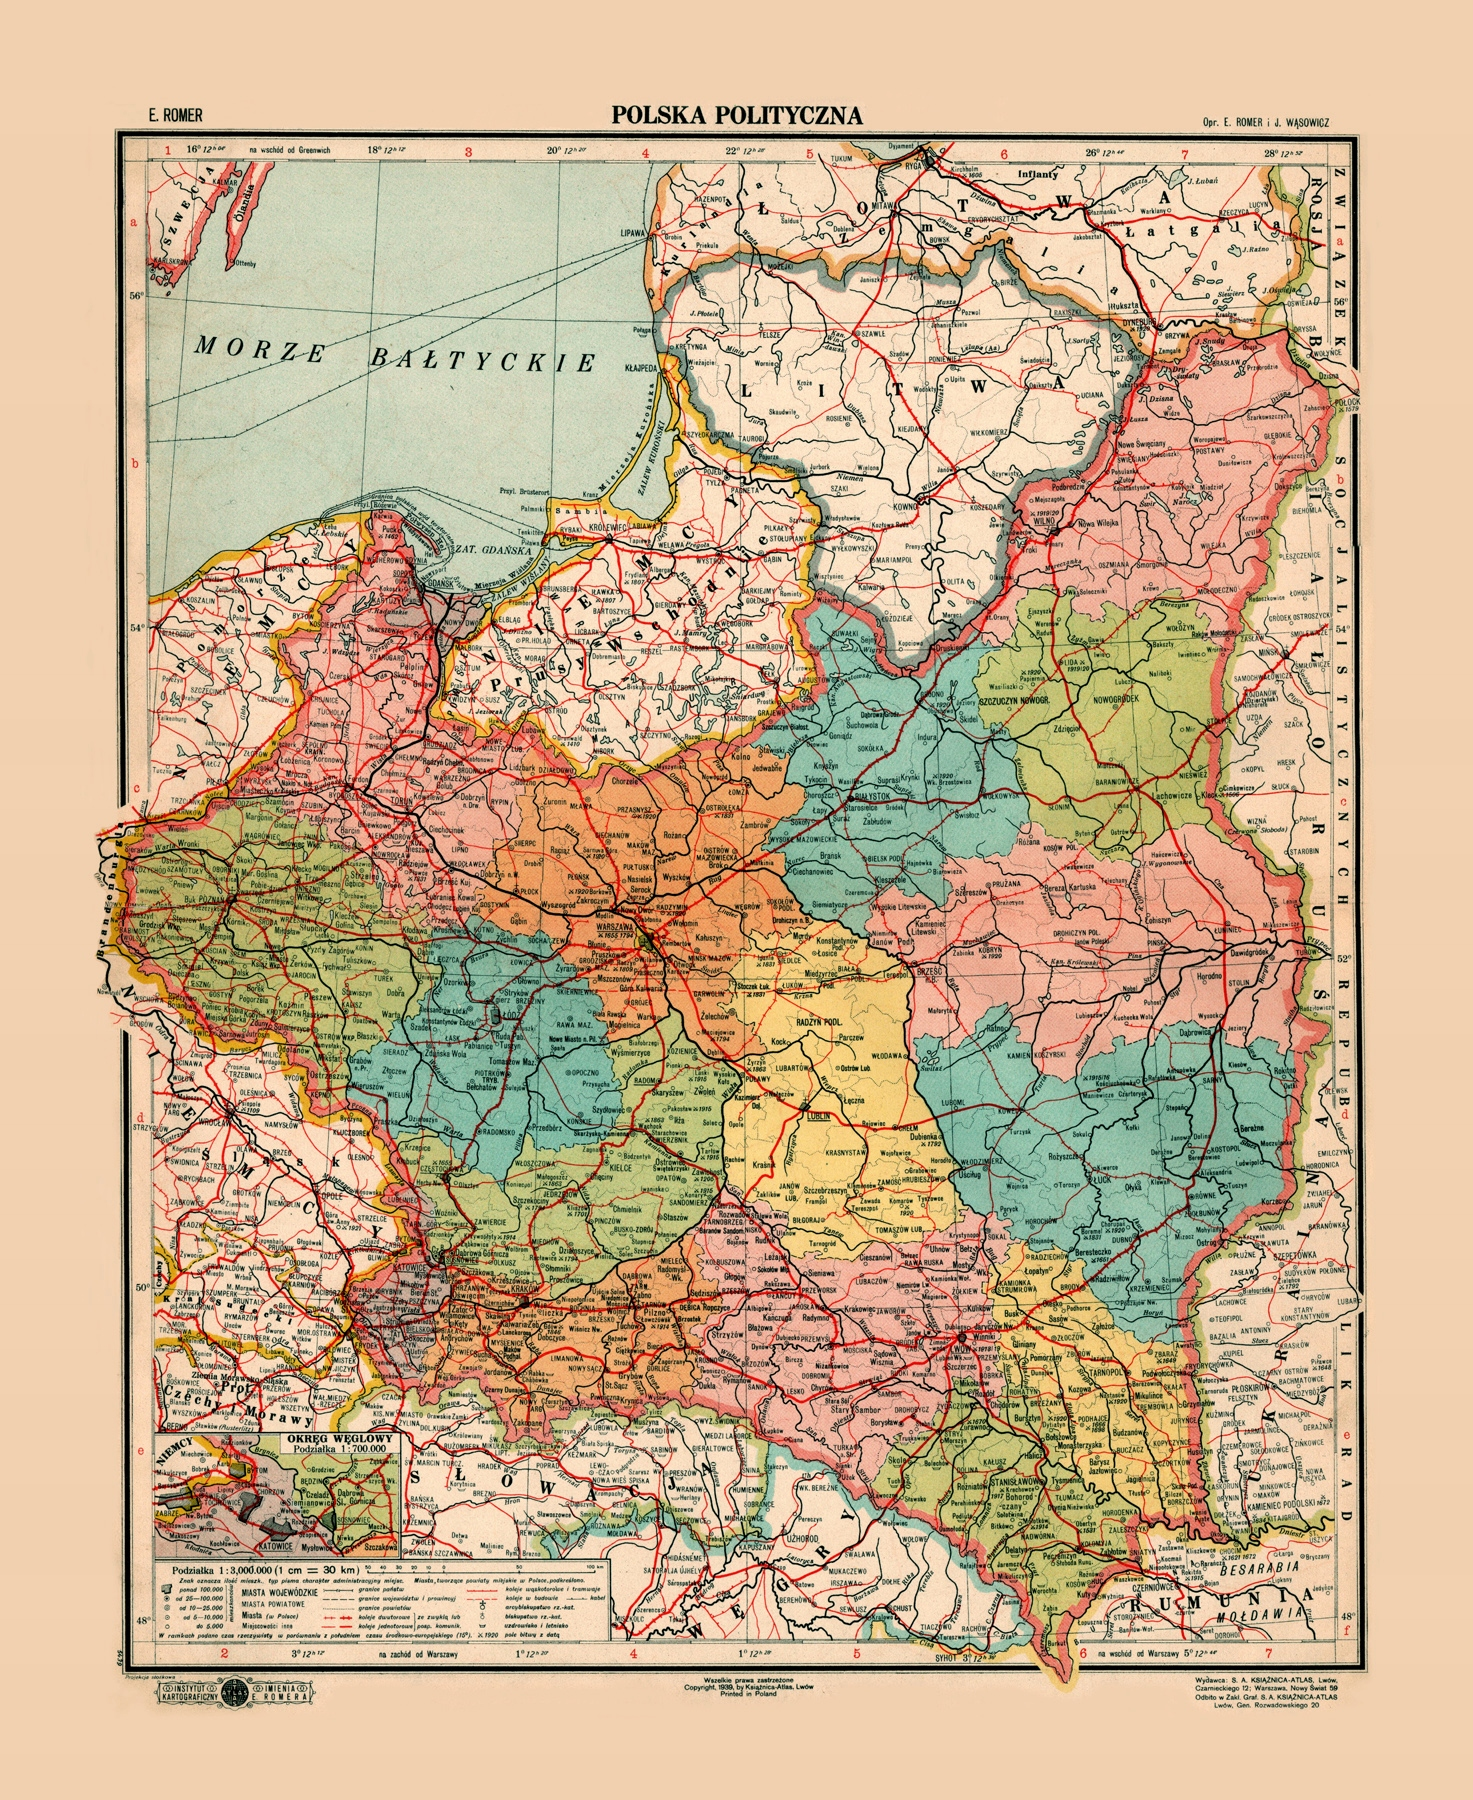 Item POLAND II Republic of Poland, WARSAW, VILNIUS, LVIV, 1939 60x50cmA2